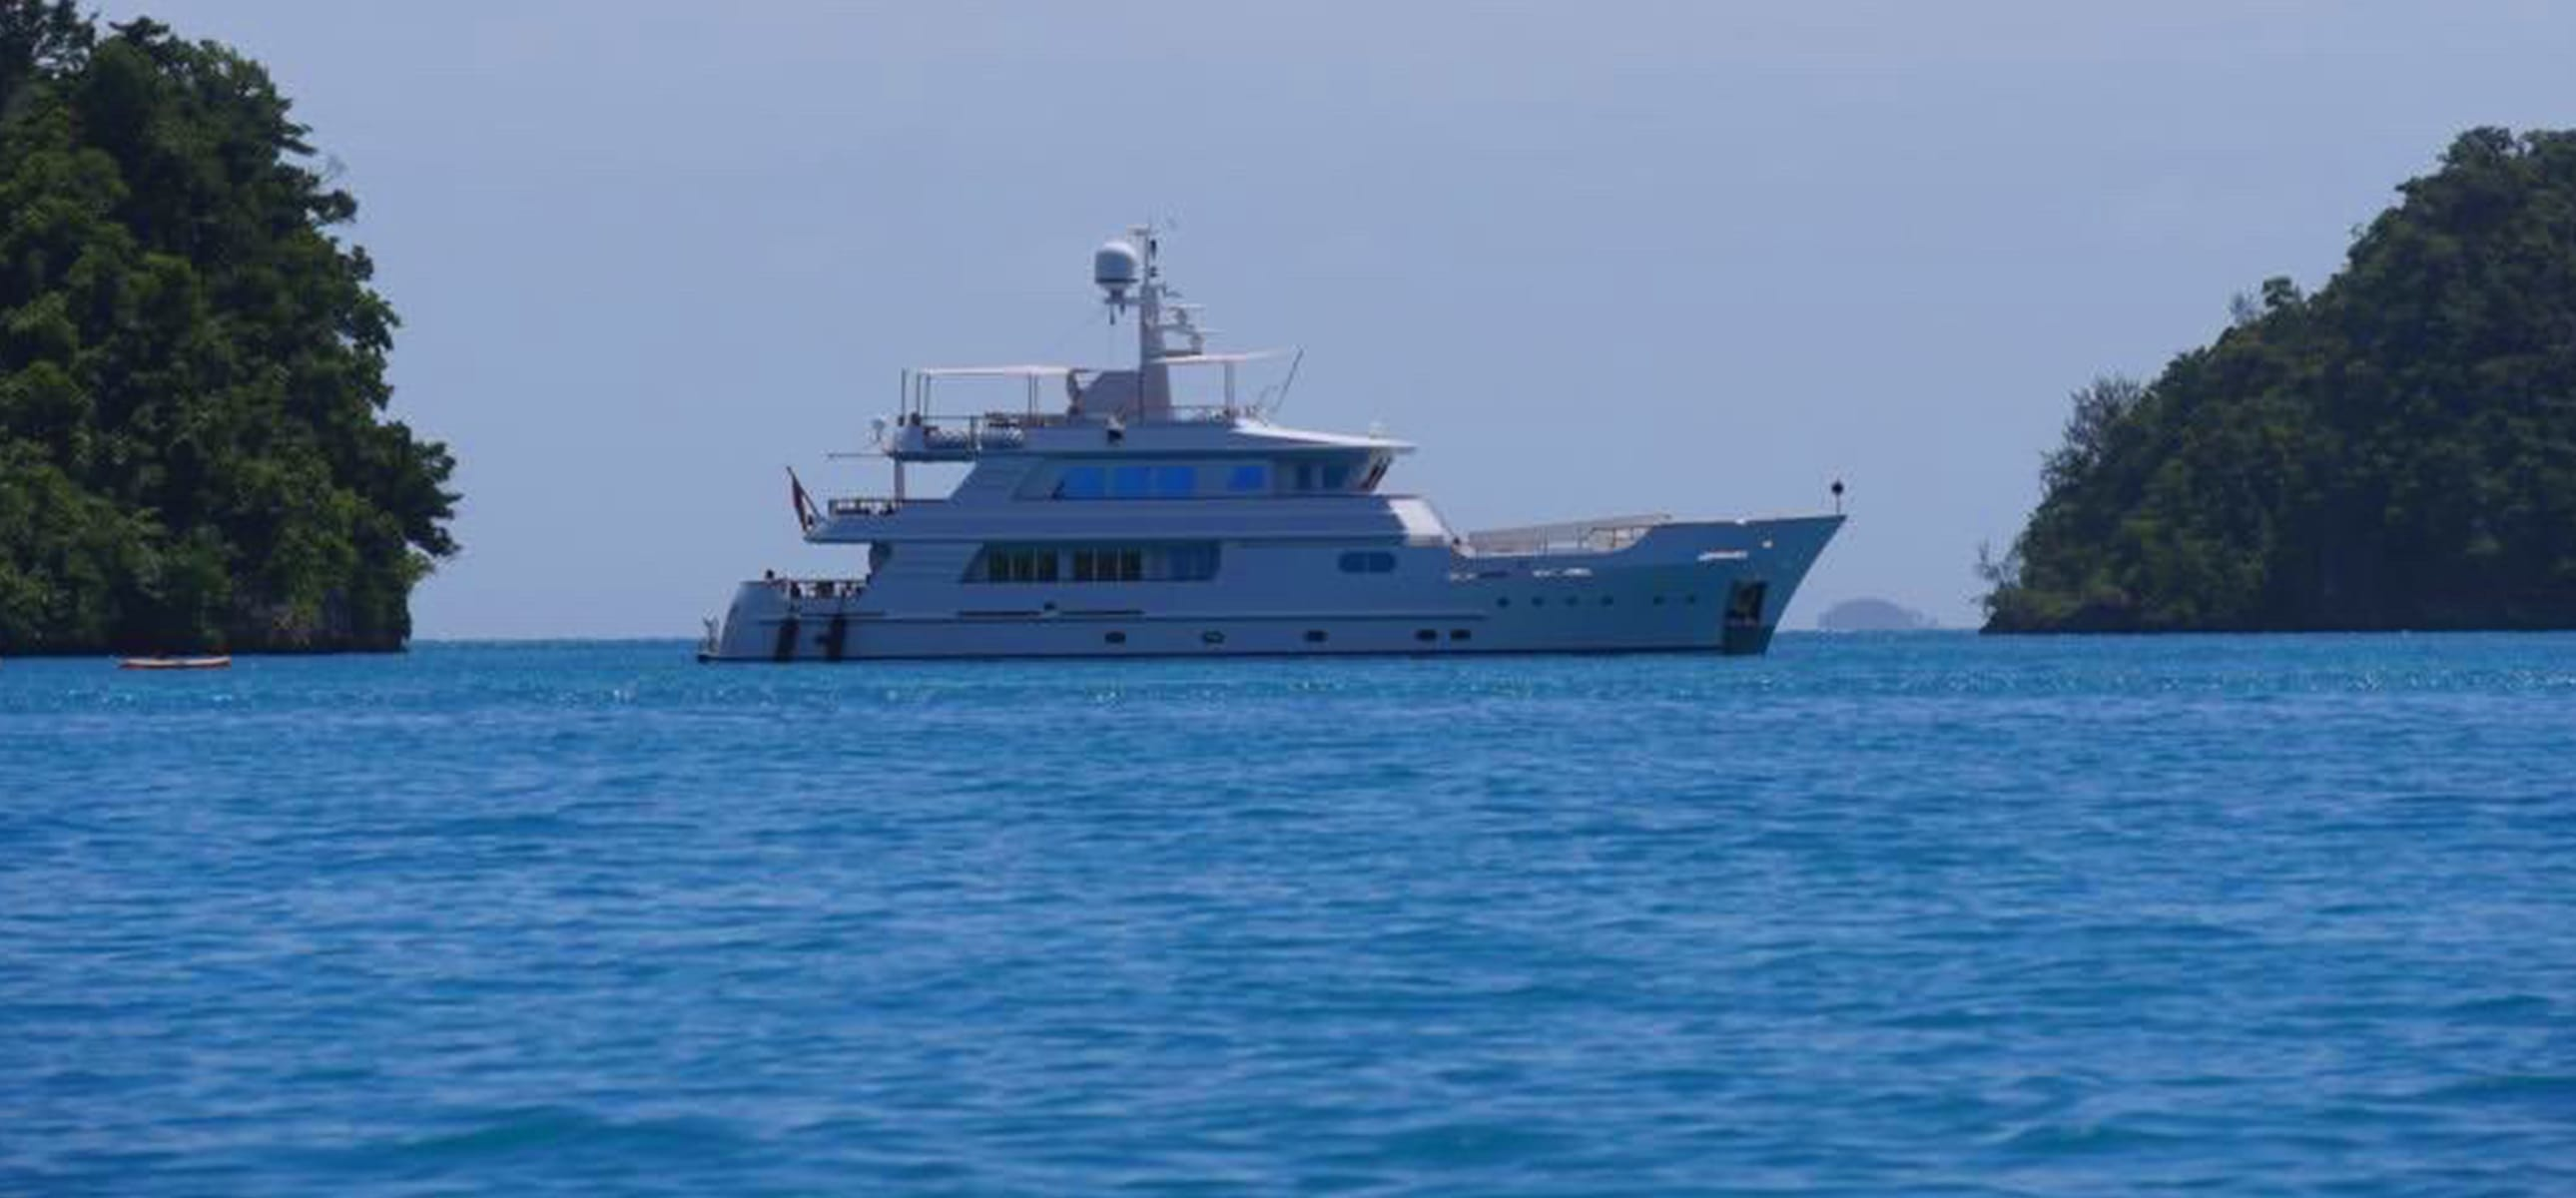 The Relentless yacht on anchor